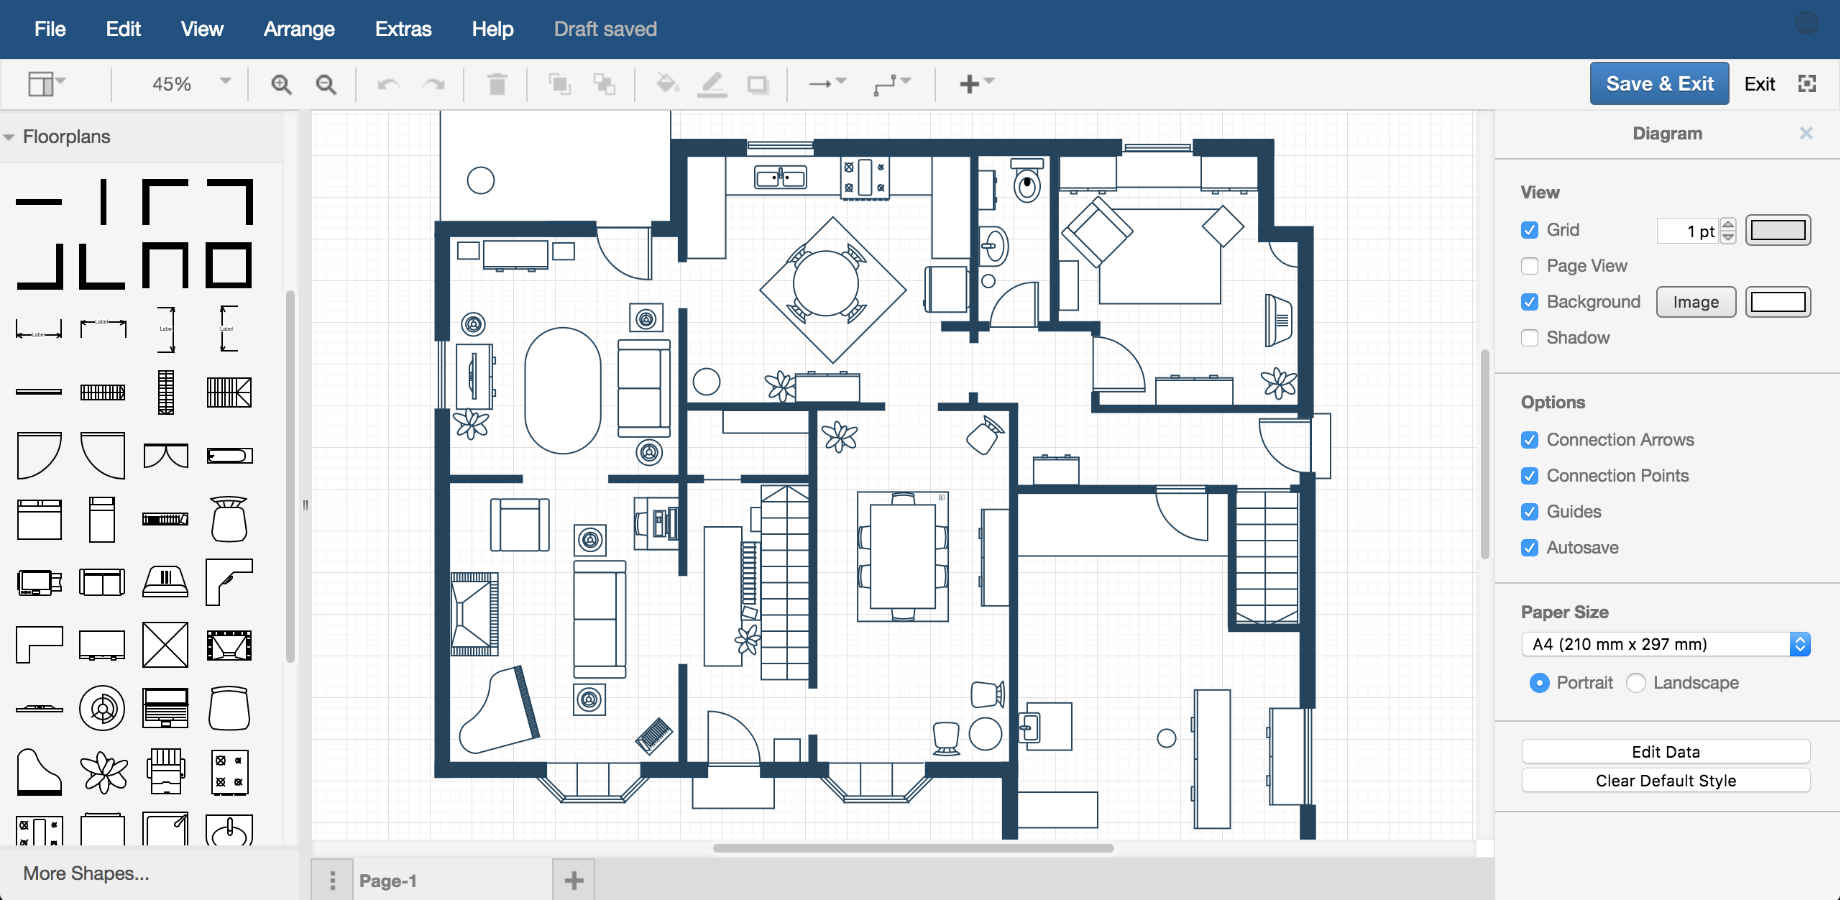 Examples Drawio Typical Home Wireless Network Diagram Use Floor Plans To Visually Organize Your Office Or Conference Space Provides You With Many Templates That Can Quickly Draw Up